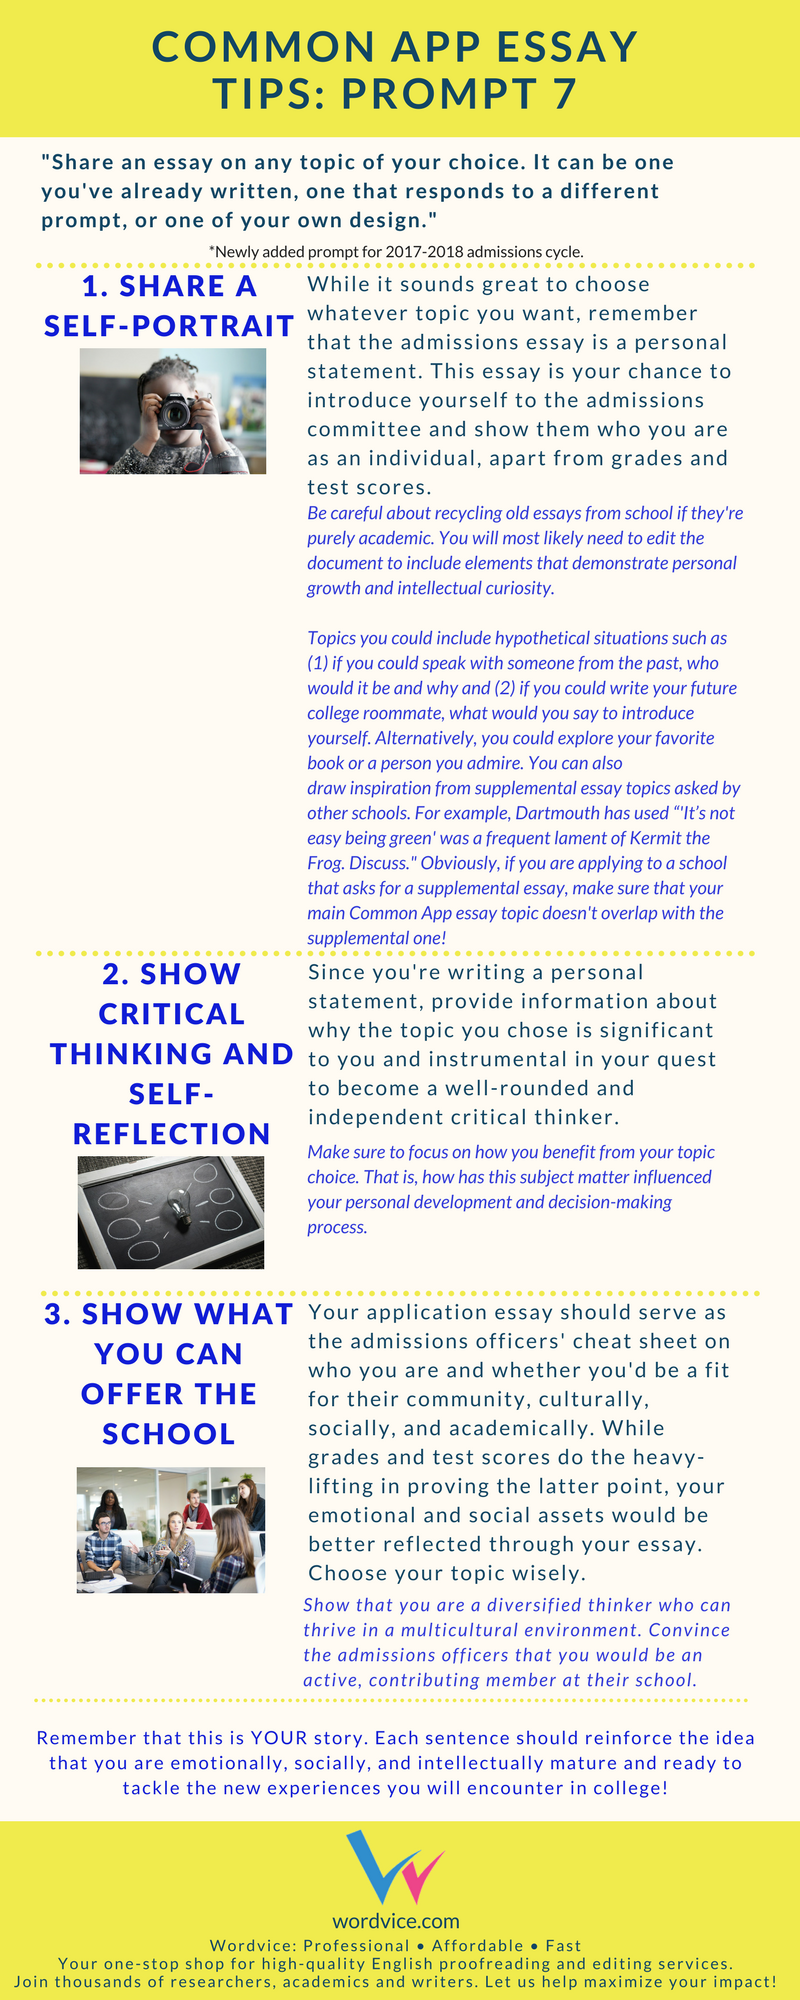 019 Common Essay Prompts App Brainstormprompt Formidable Examples Prompt 4 Scholarship Full